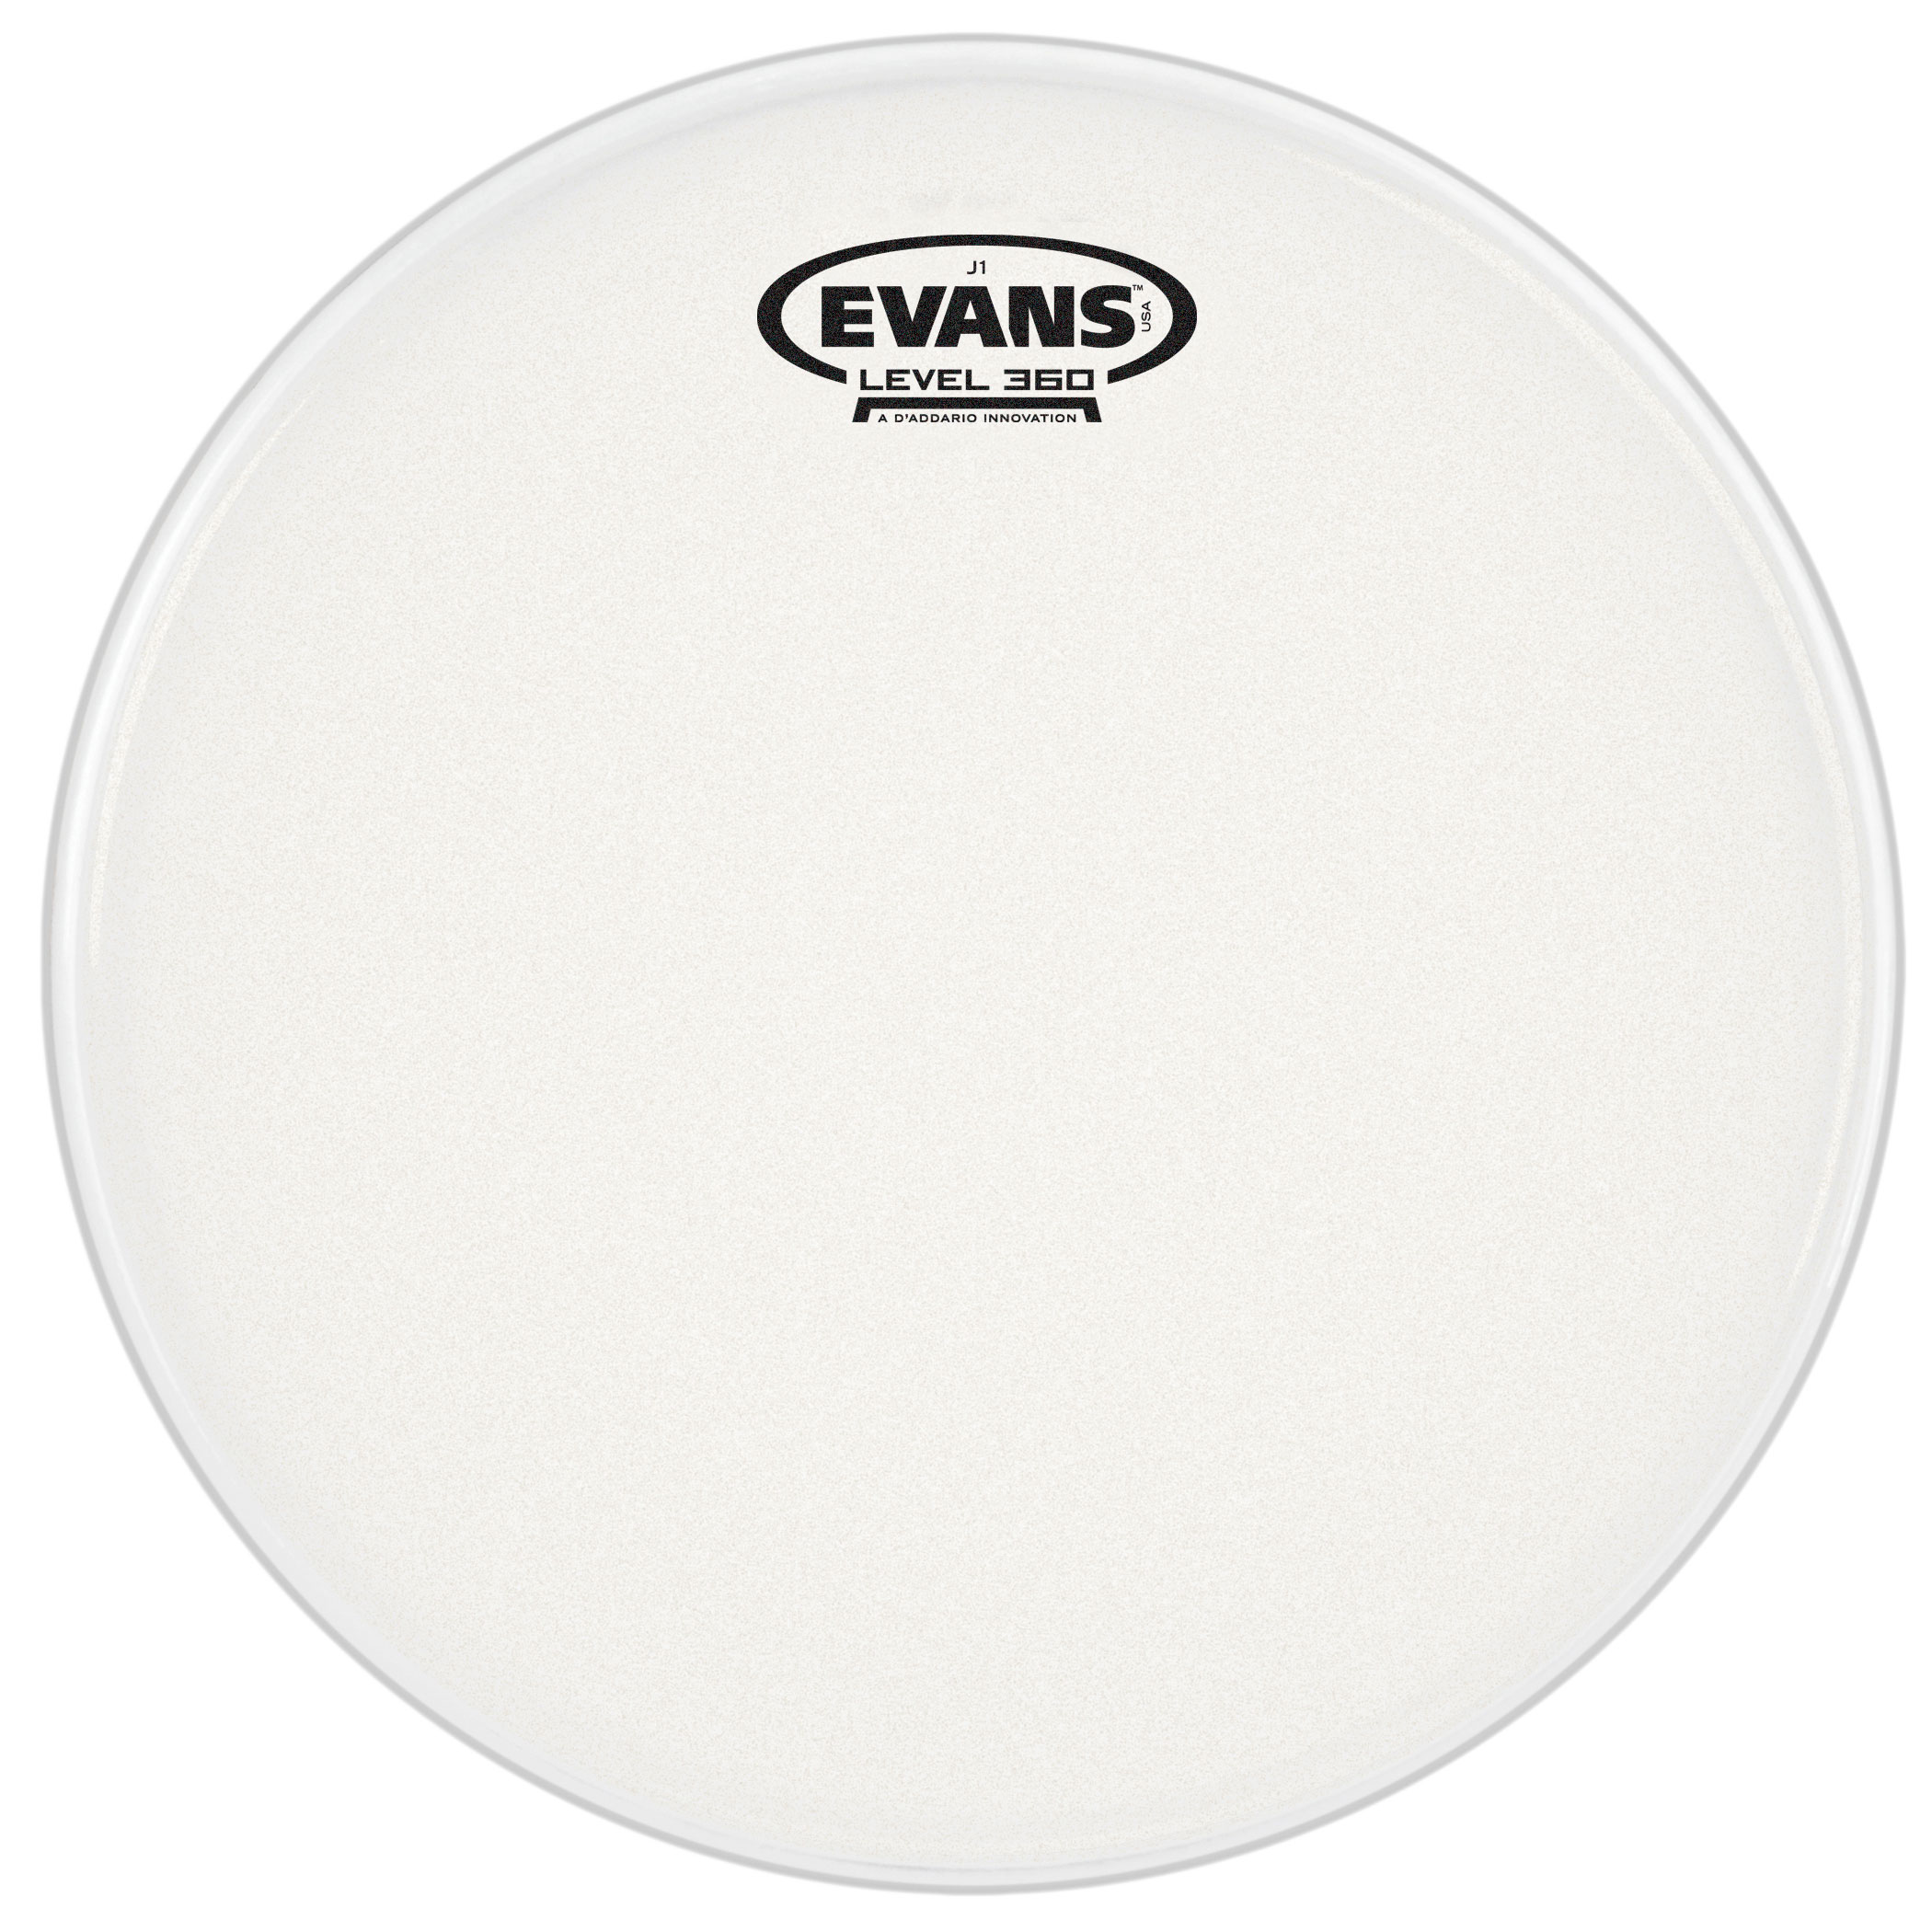 "Evans 14"" J1 Etched Head"